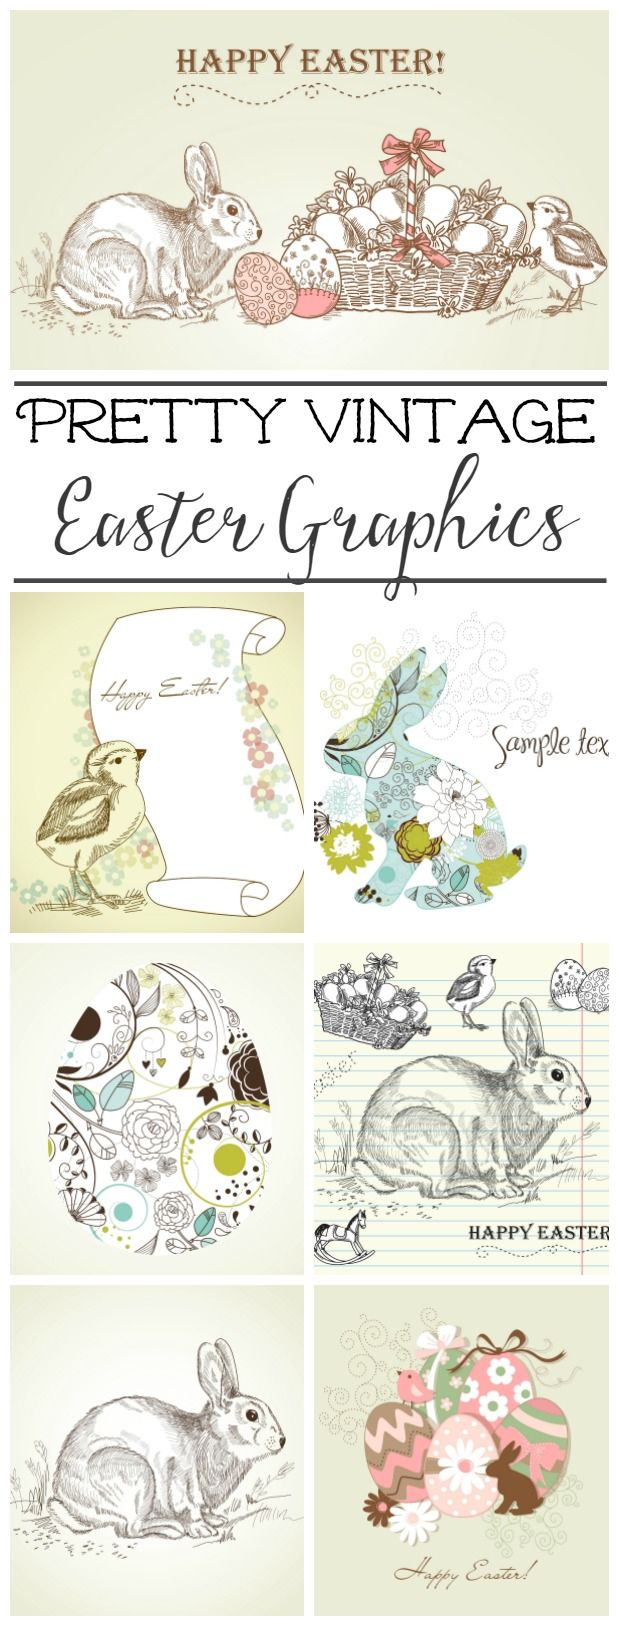 Pretty vintage Easter graphics. Great for Easter cards, tags and printables!